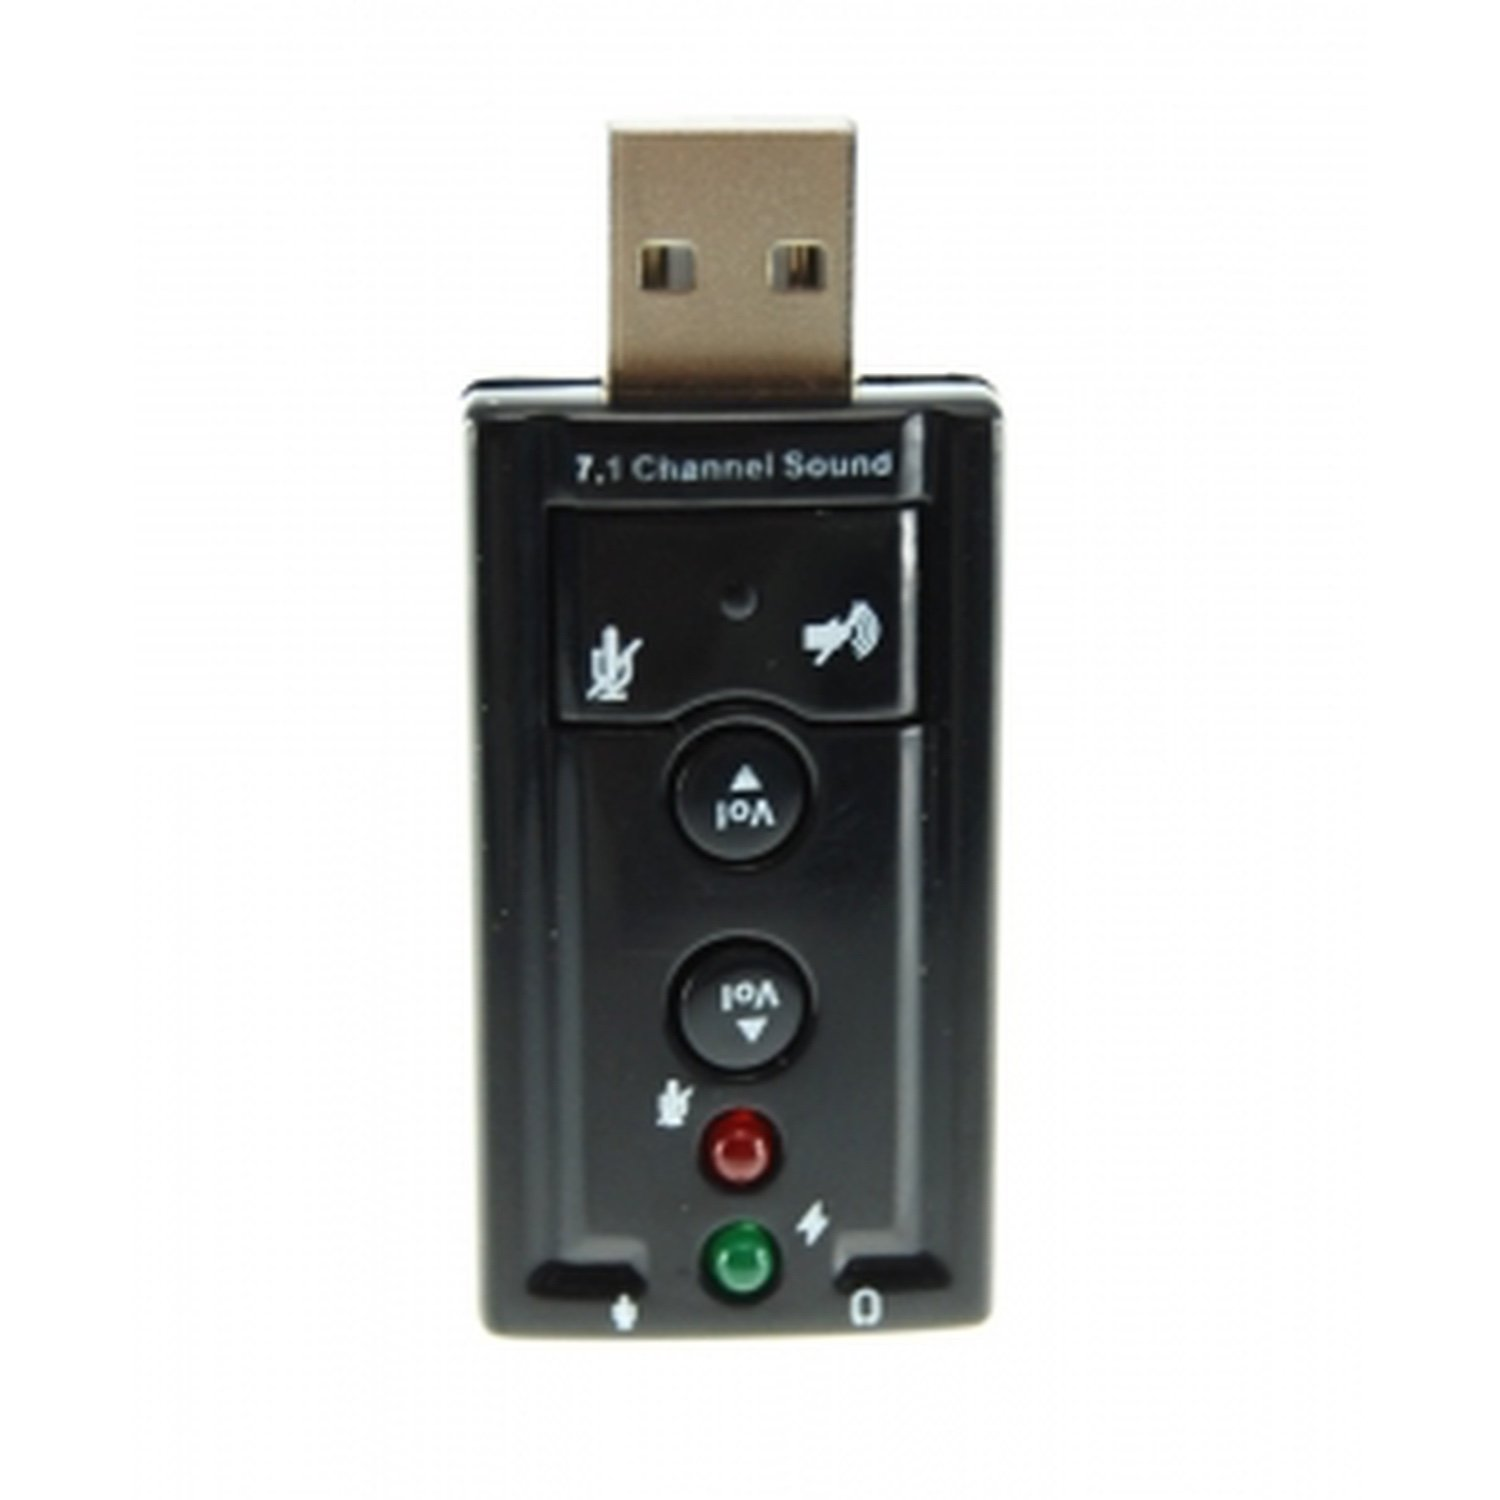 7.1 USB Sound Card